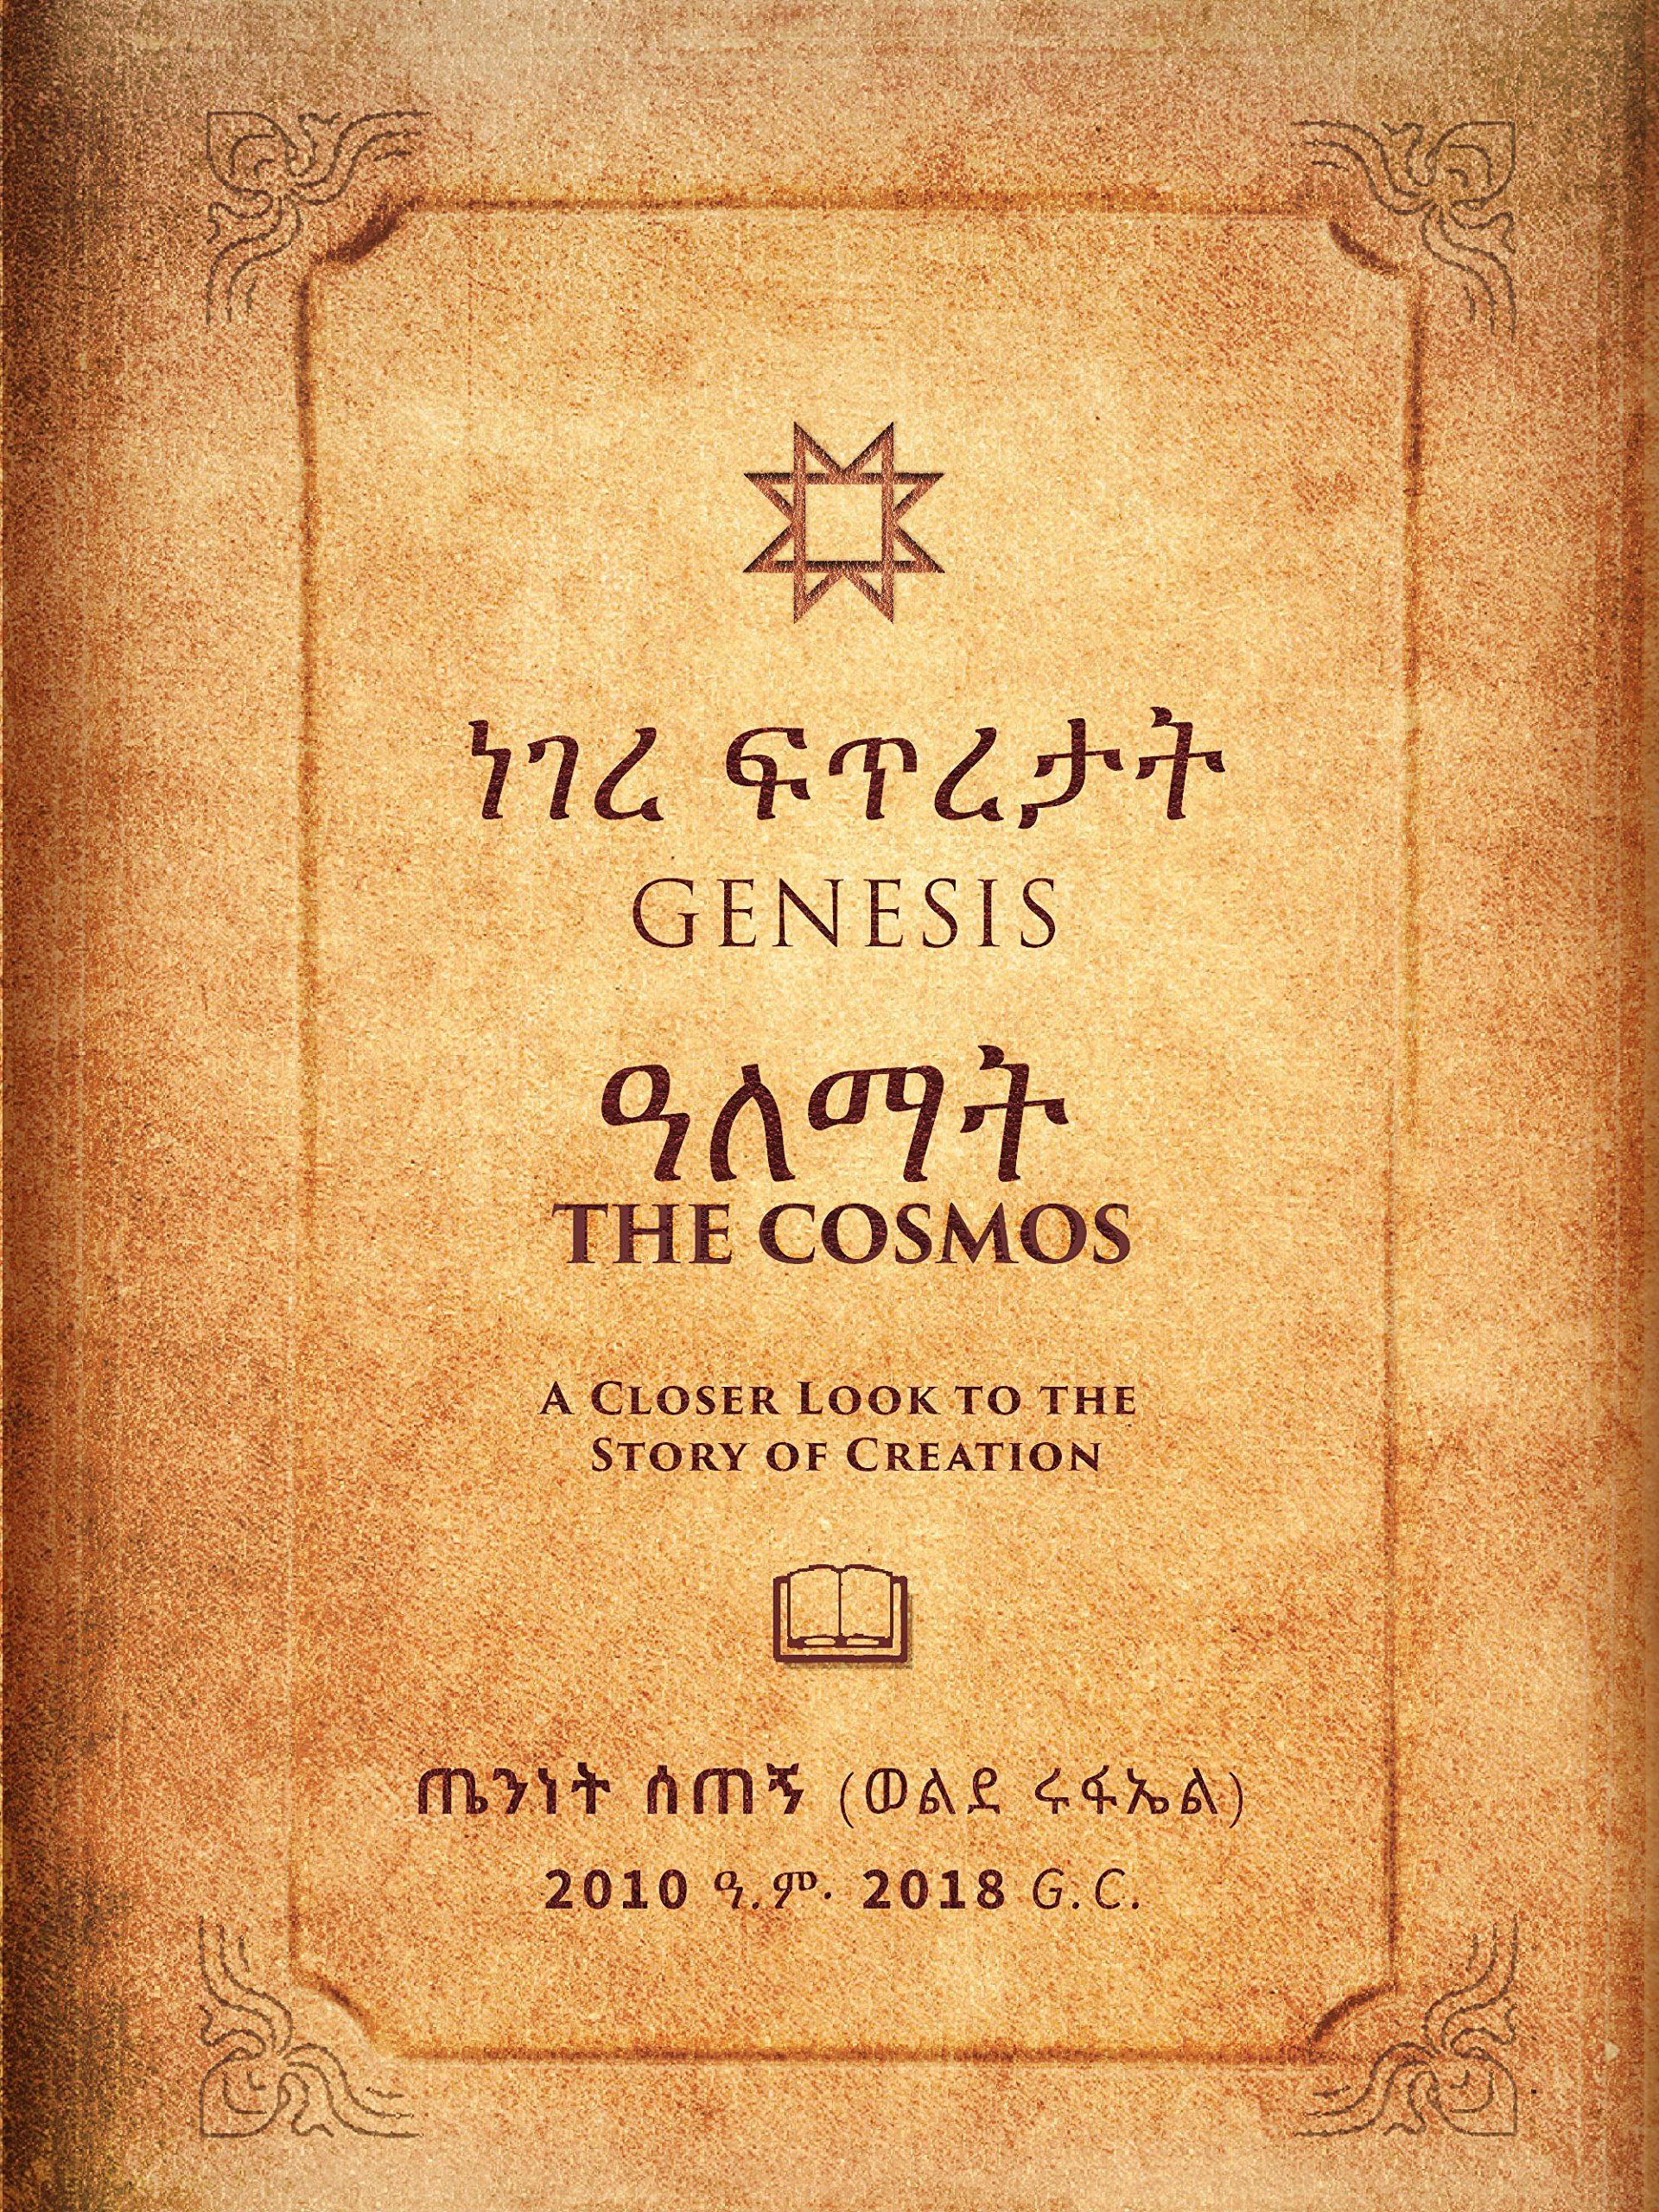 Genesis A Closer Look to The Story of Creation